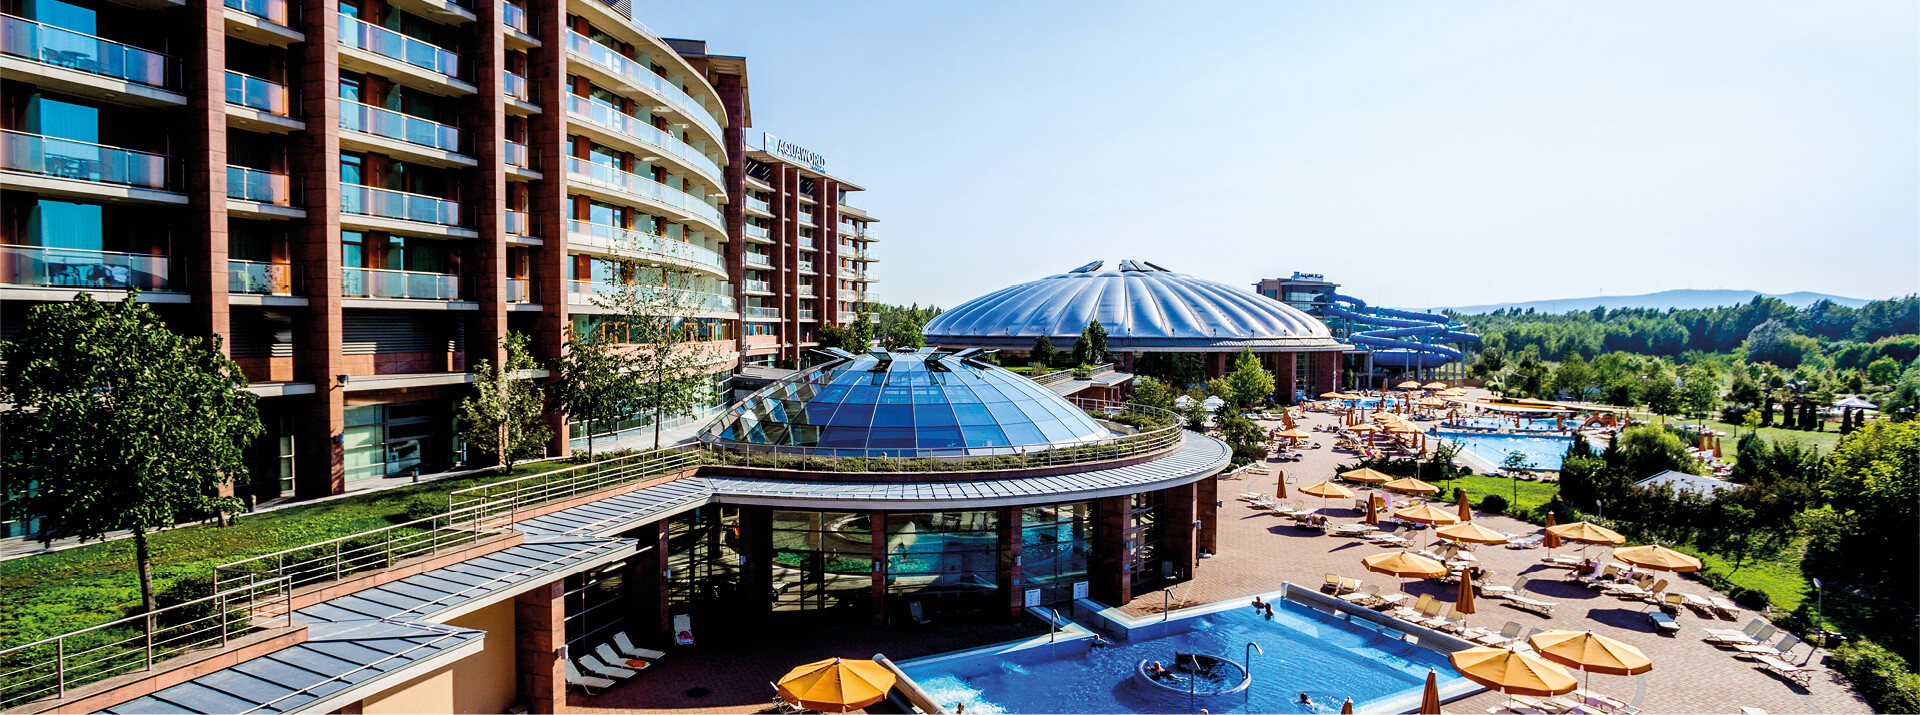 Aquaworld Budapest - huge indoor and outdoor pool park